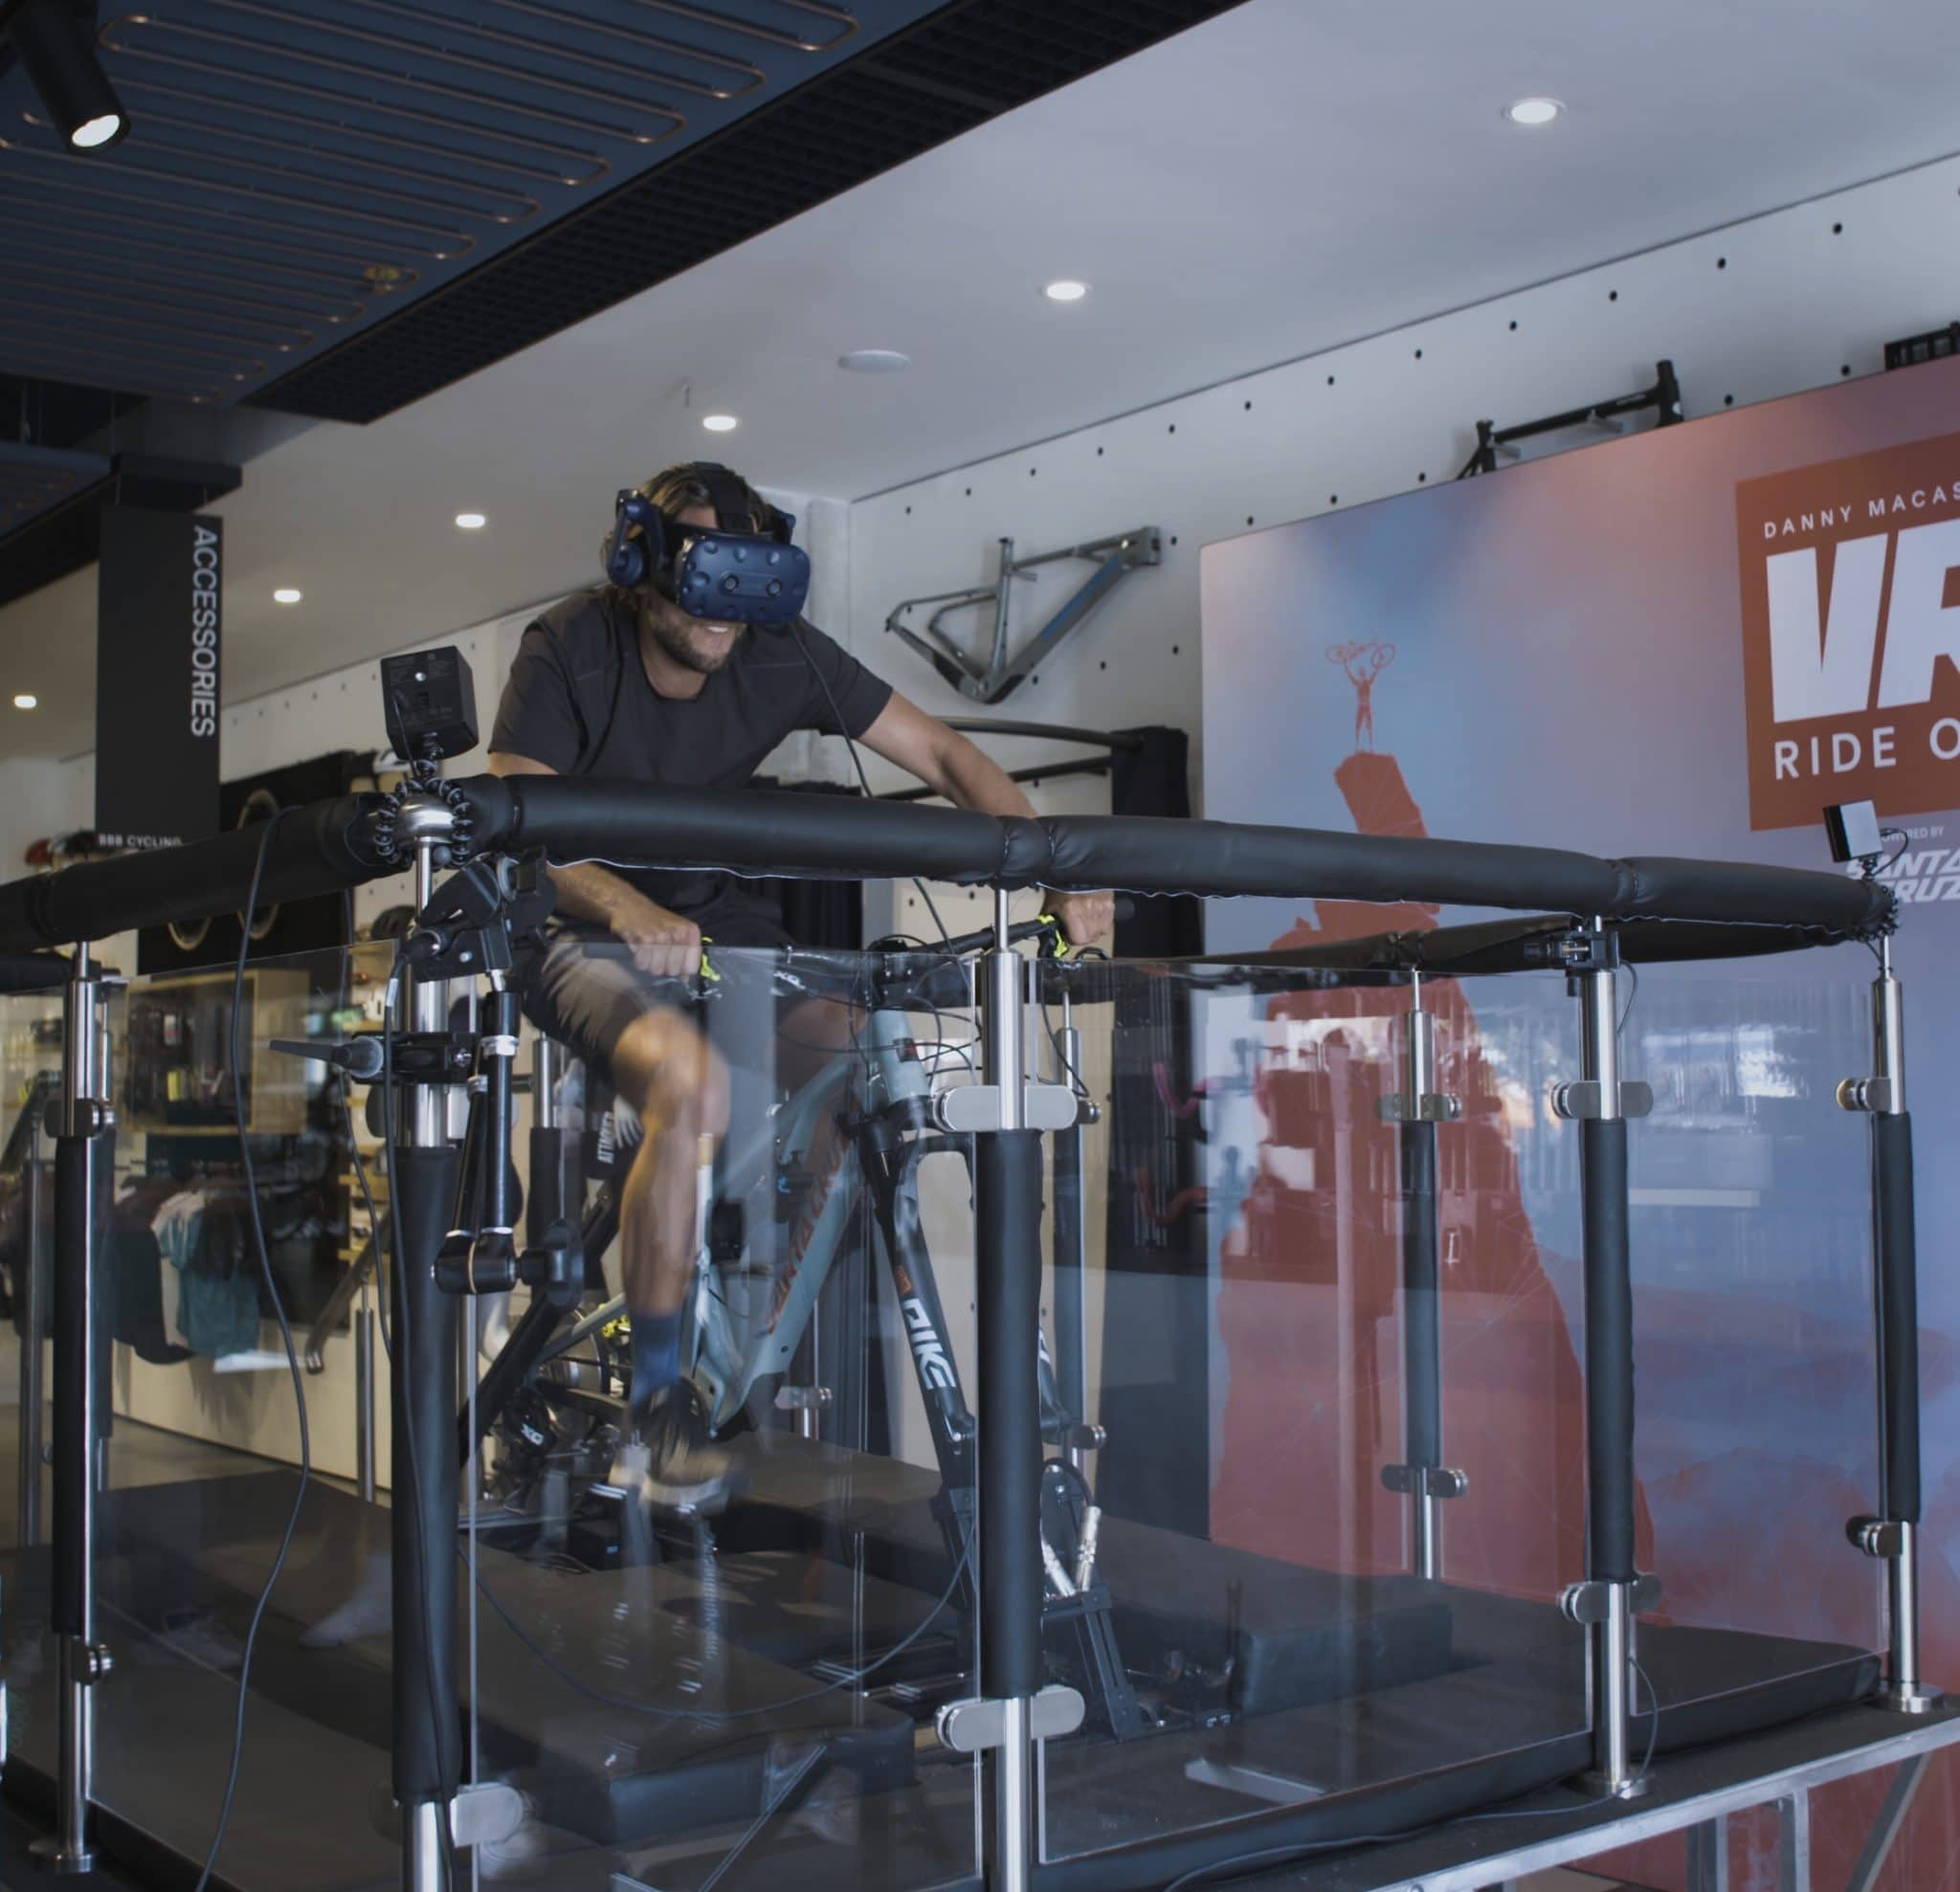 Danny MacAskill Ride Out VR